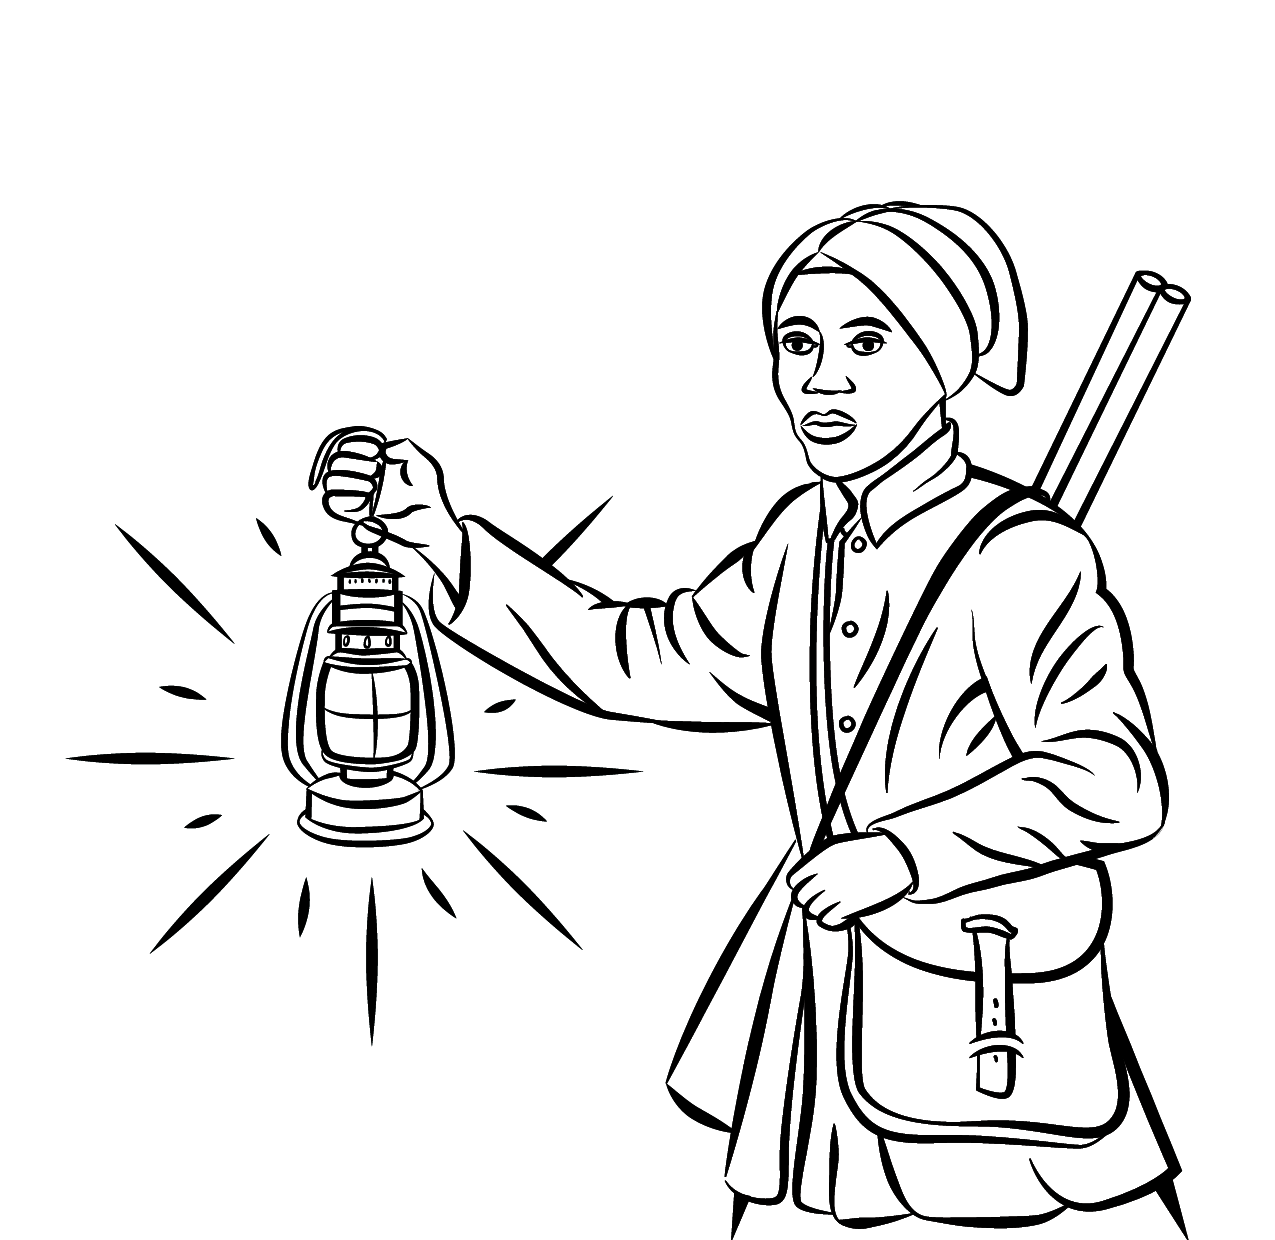 Free Worksheet Harriet Tubman Worksheets rosa parks coloring pages printable color a picture of harriet tubman ali crokky pages